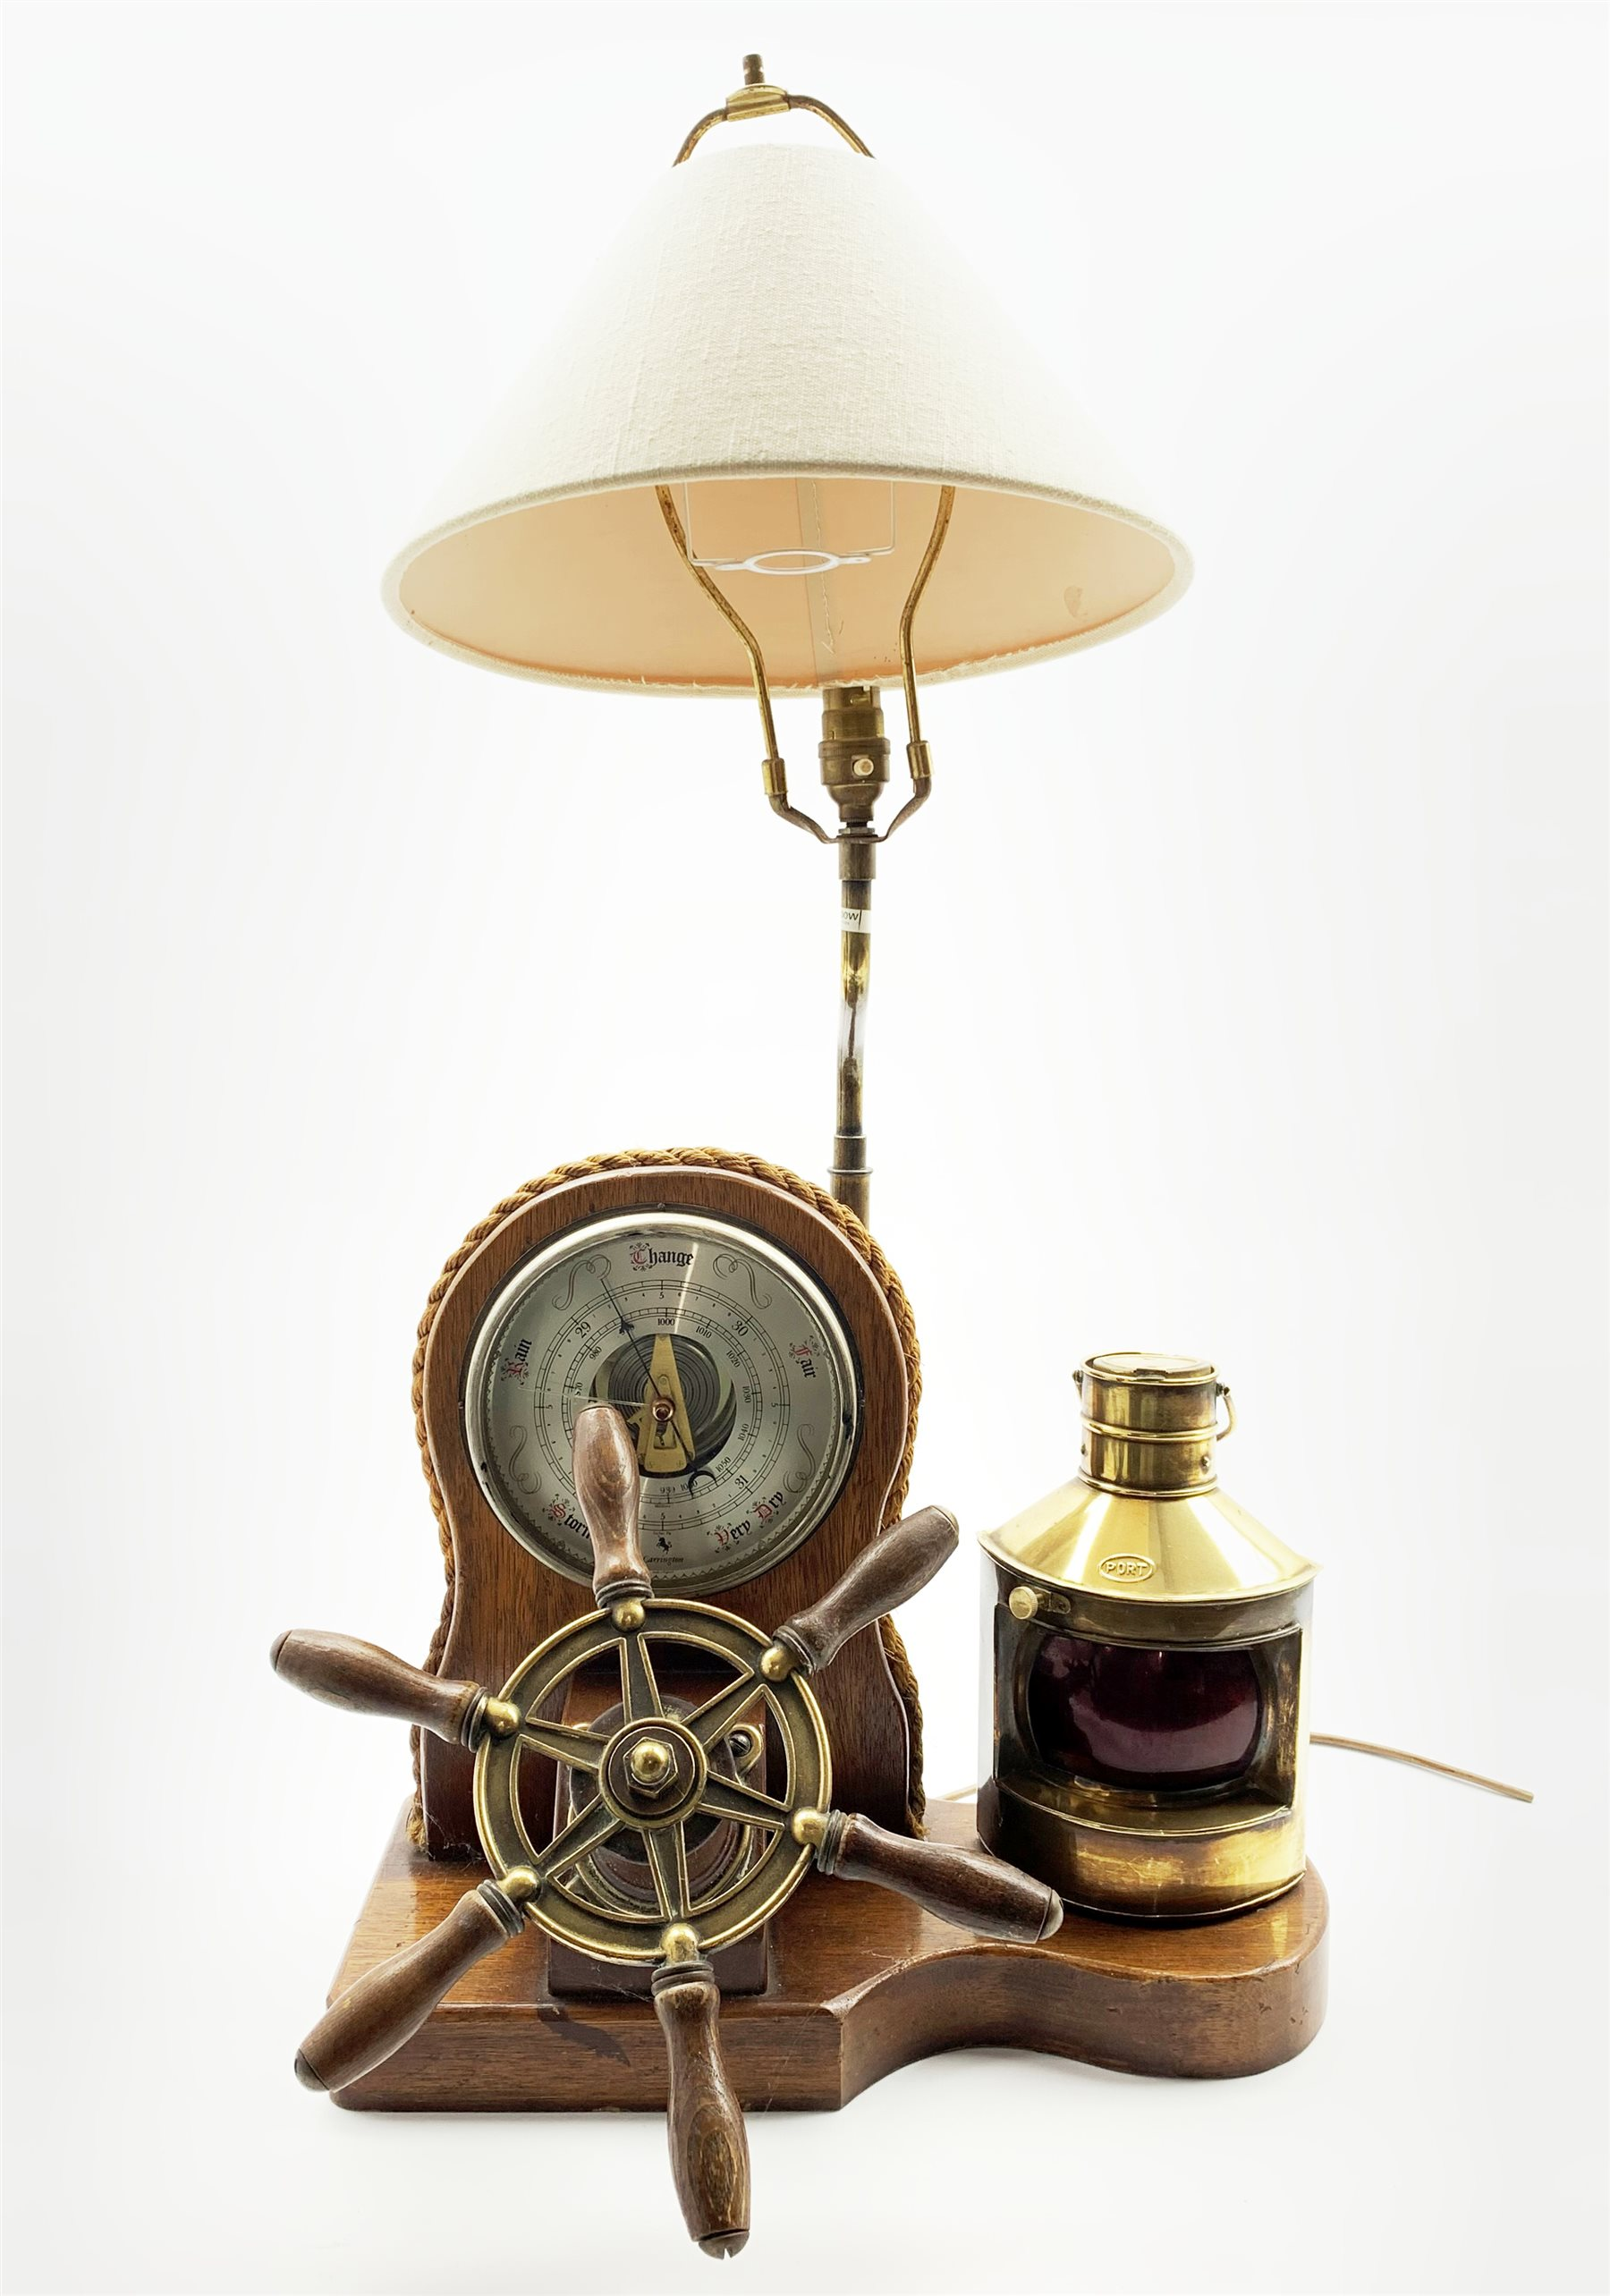 Oak Table Lamp Formed With A Nautical Theme With Aneroid Barometer Port Lantern And Six Spoke Wheel H80cm Antiques Fine Art Interiors Collectors